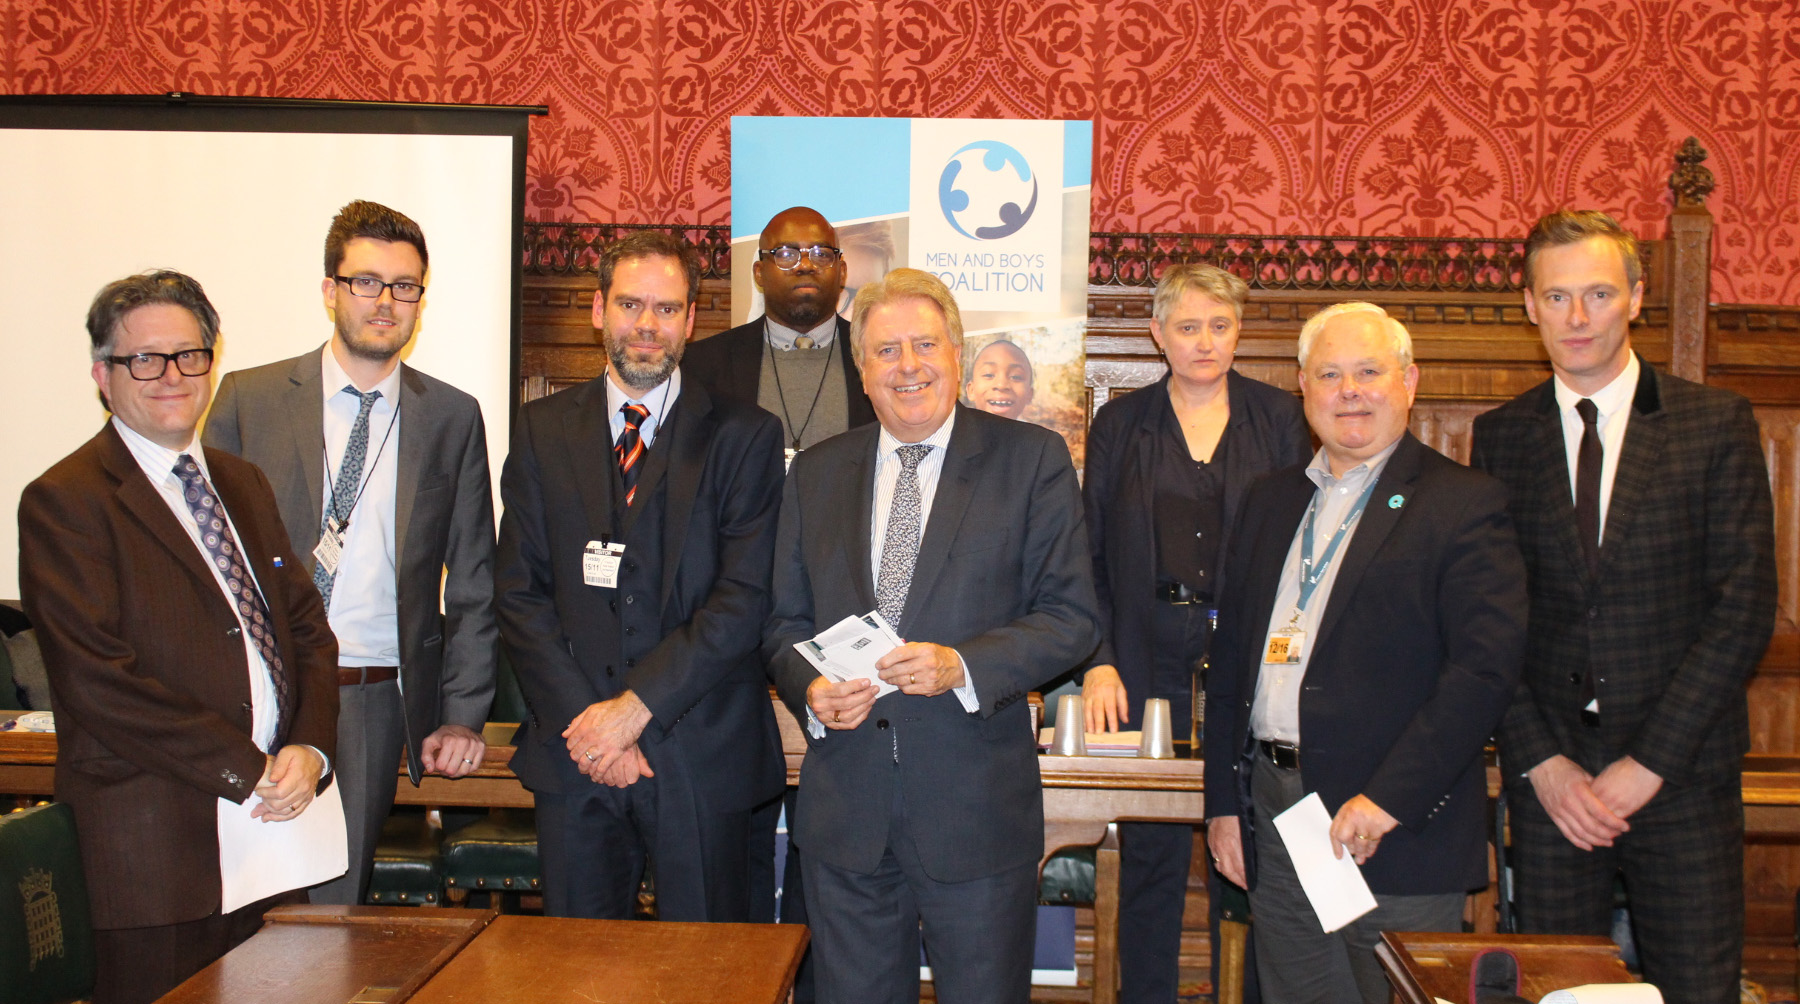 Men and Boys Coalition, David Evennett MP, Davif Evennett